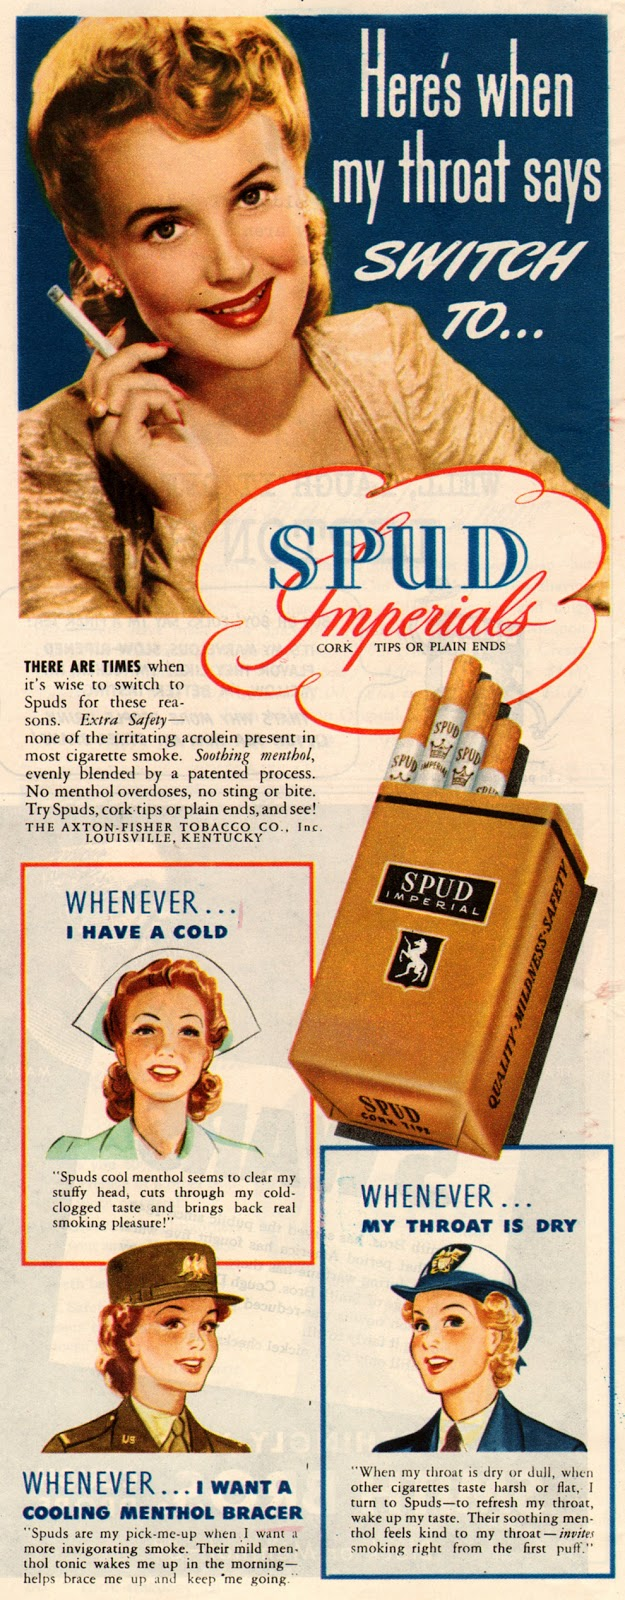 34-Misguided-Smoking-Advertisement-From-Yesteryear-26